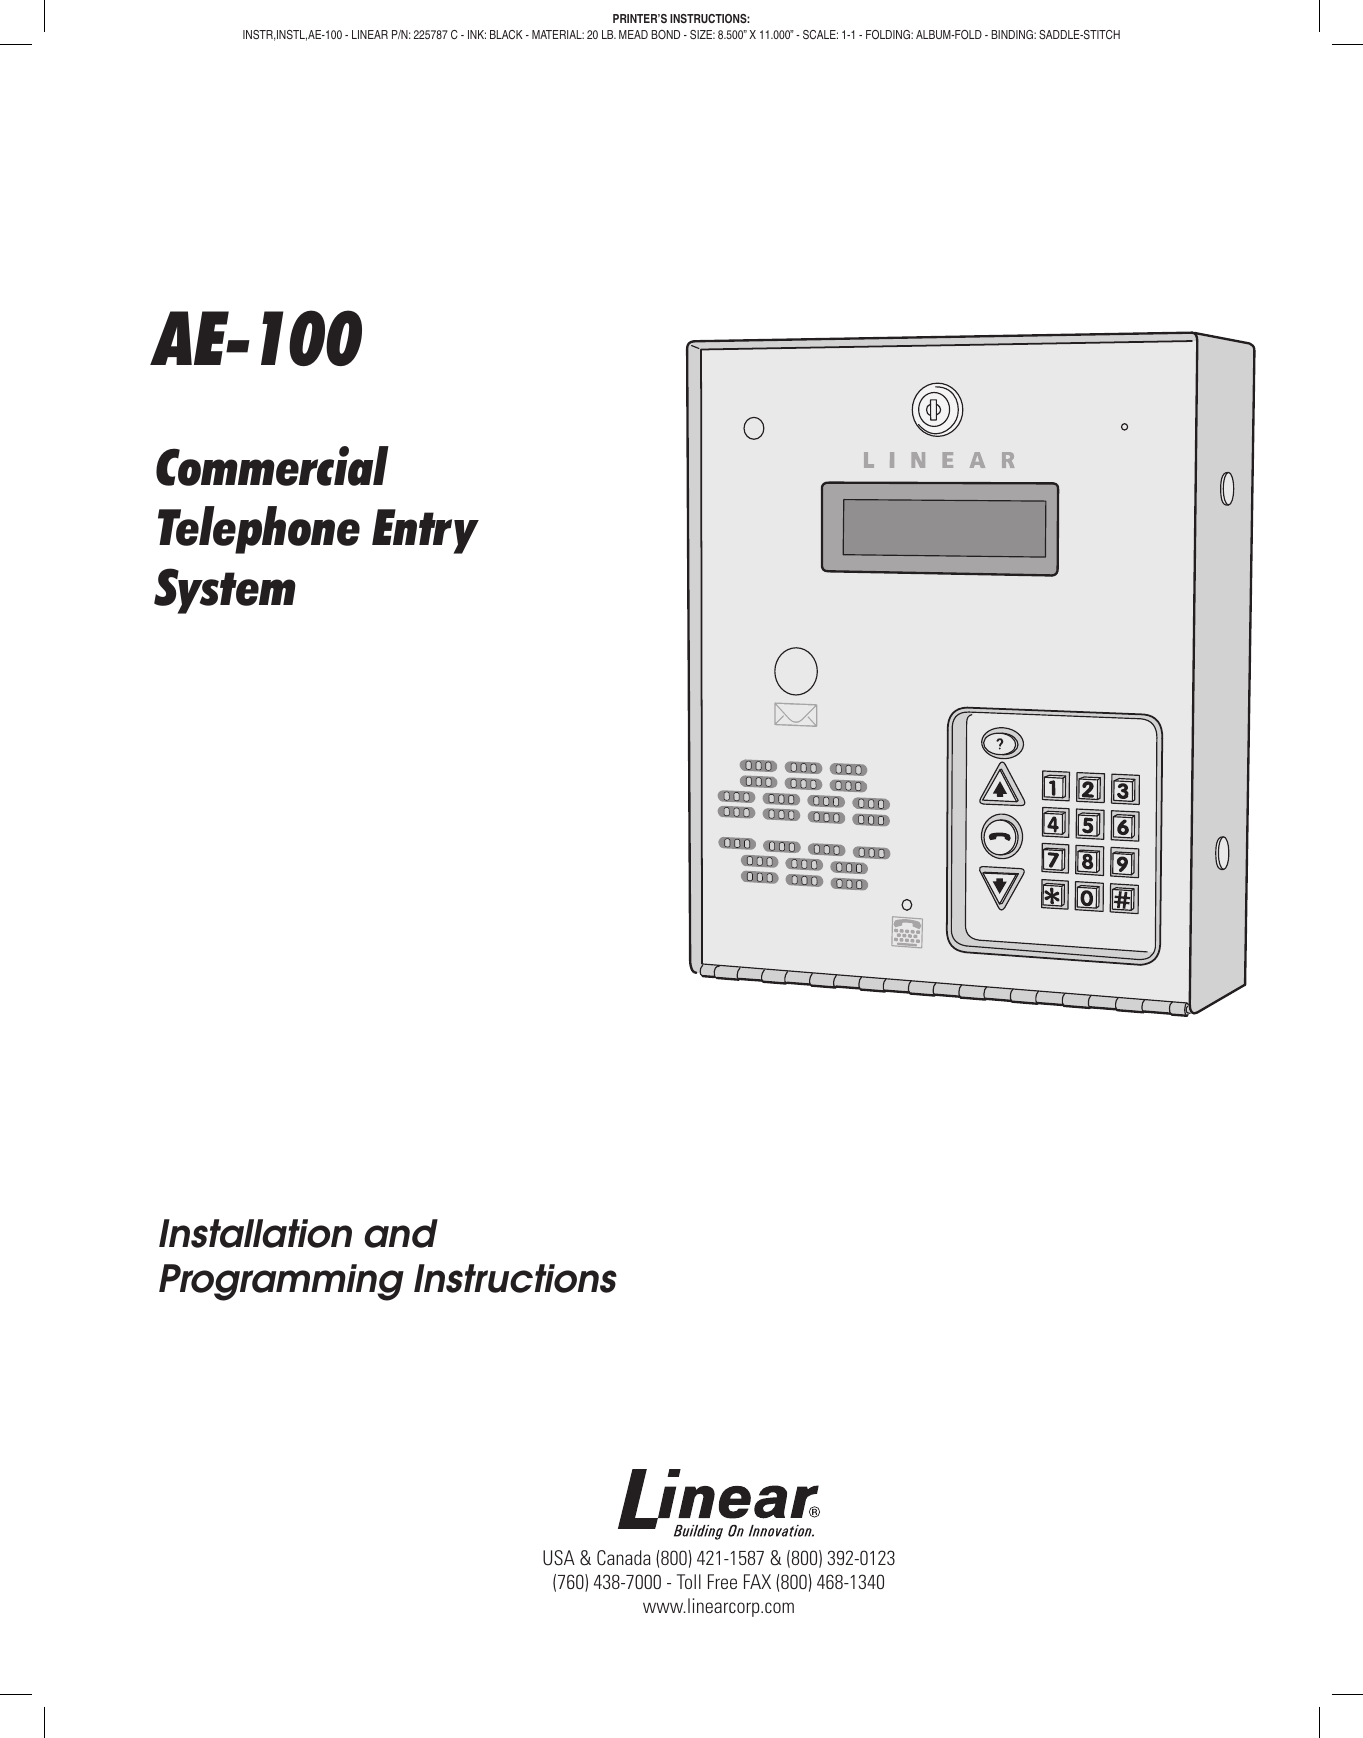 LINEAR CORPORATION ACP00941 Security Accessories 1